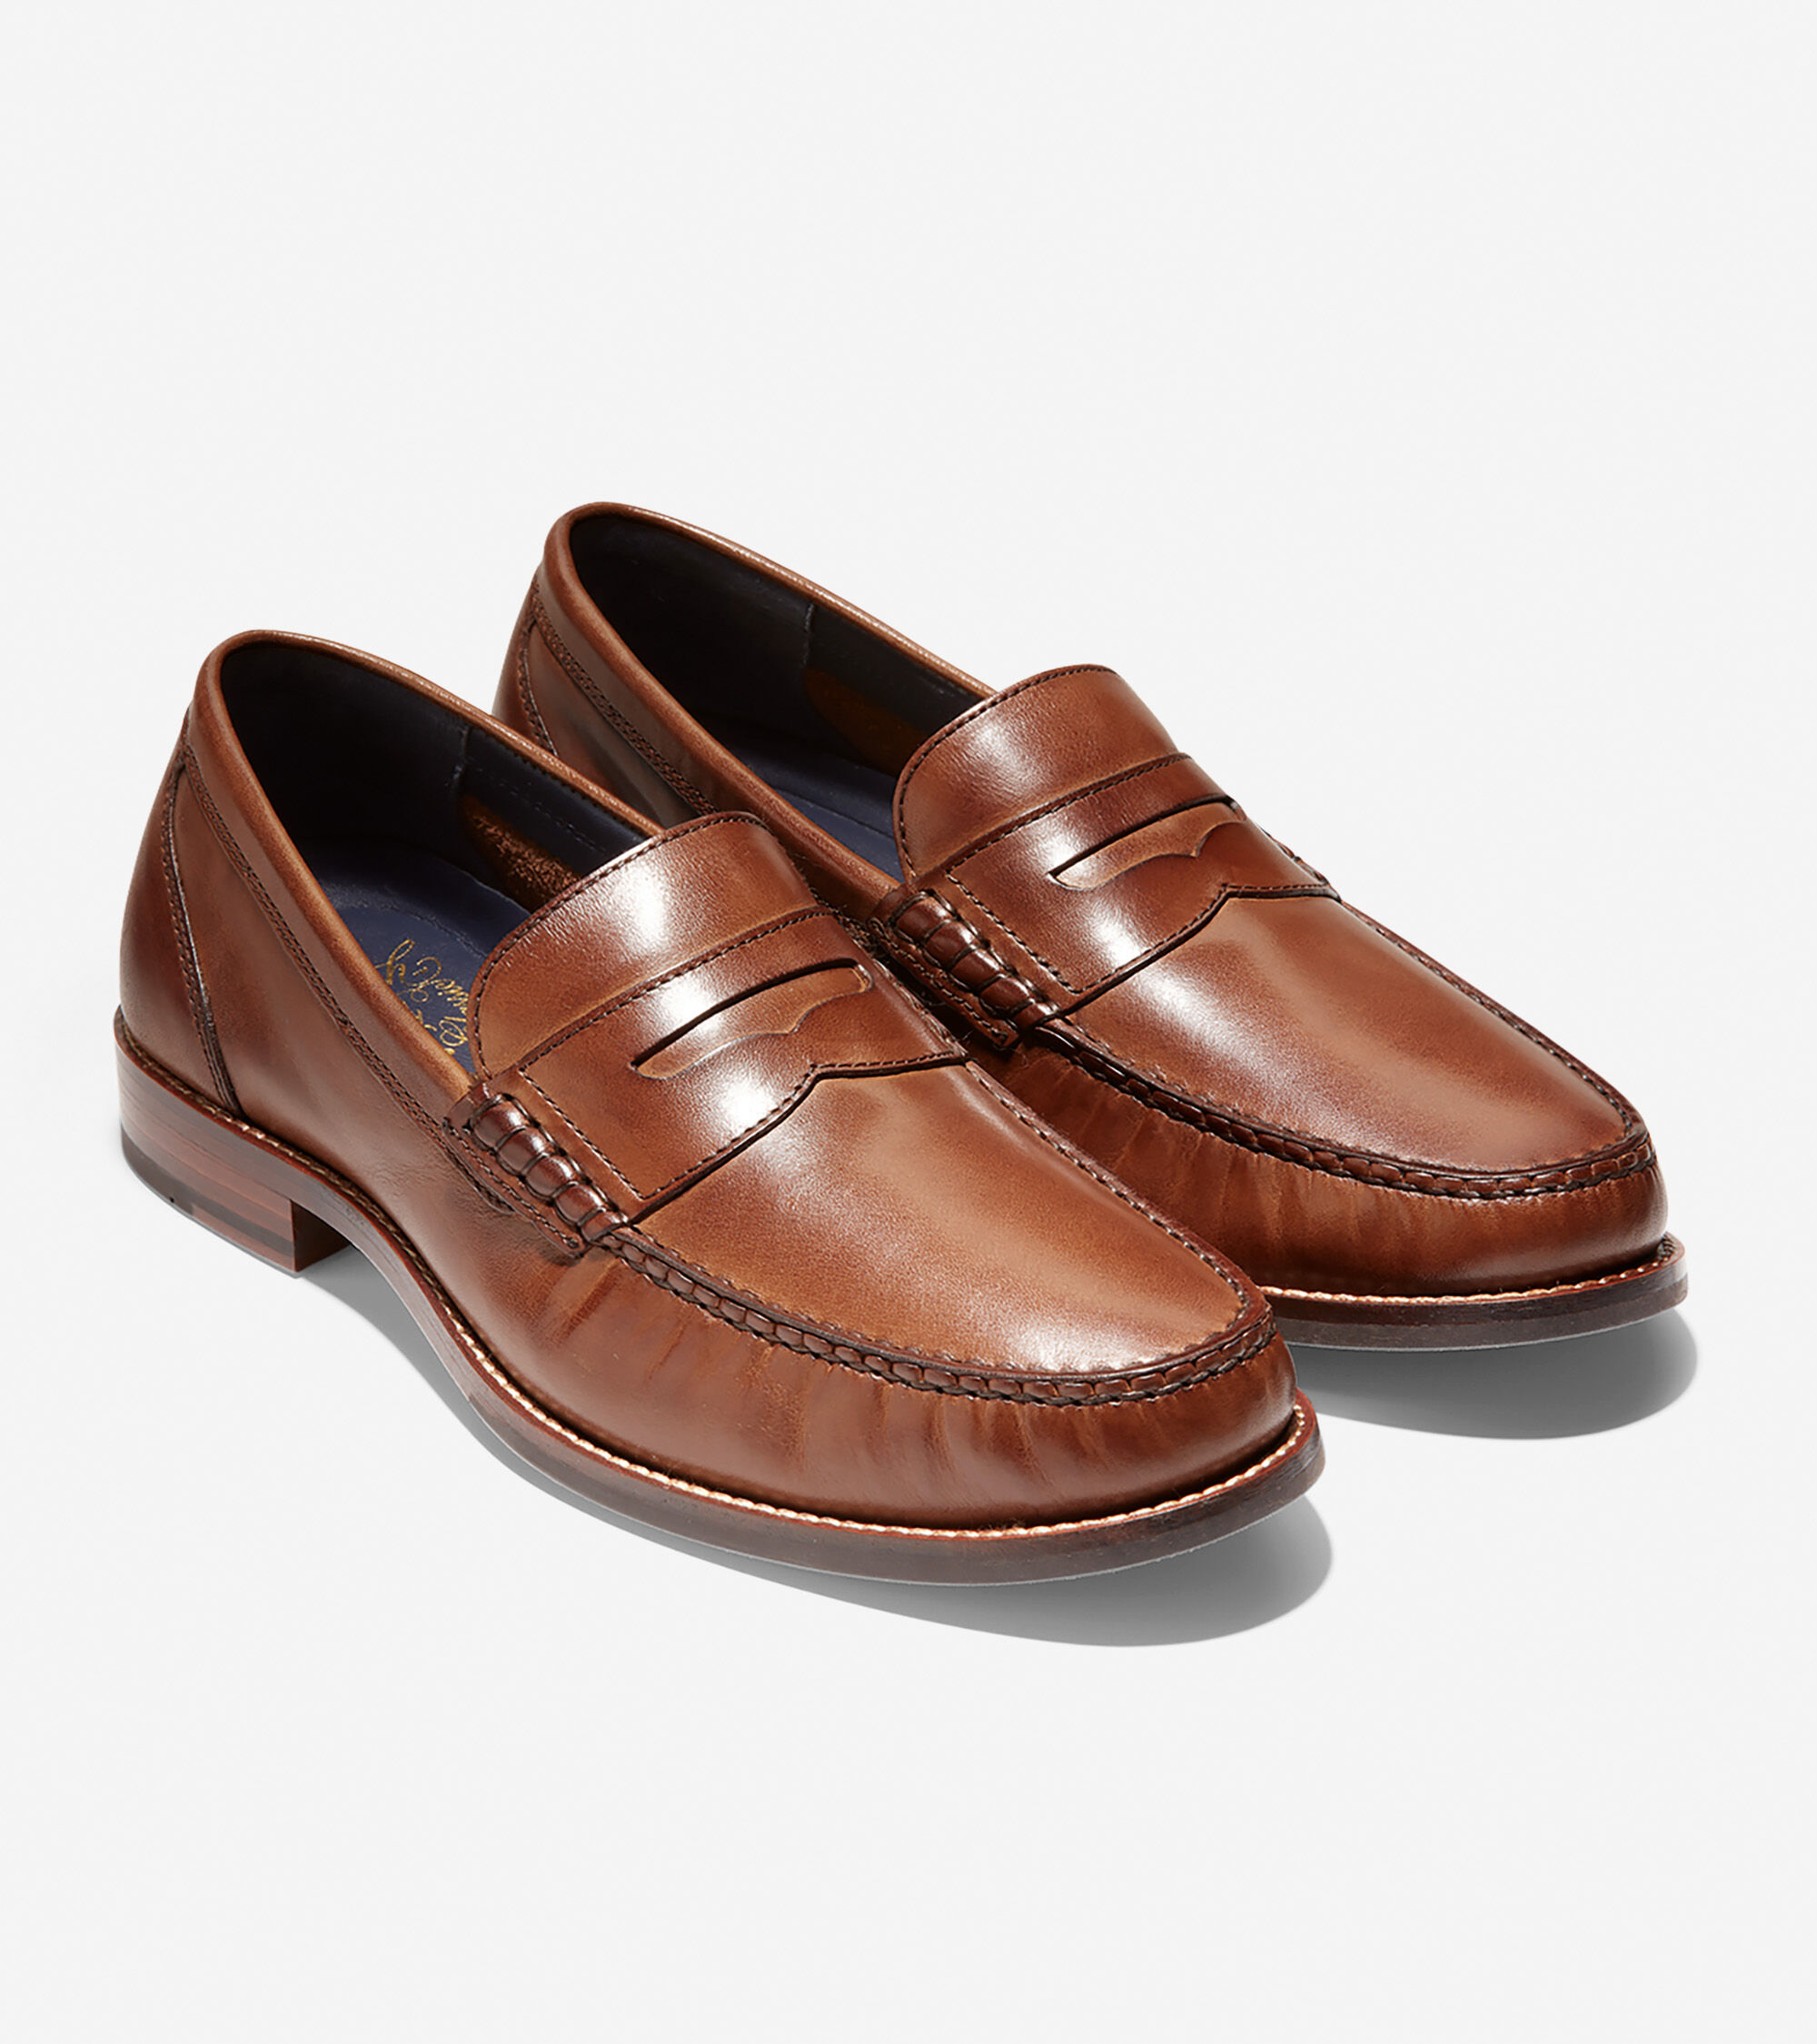 Men's Pinch Grand Classic Penny Loafers in Tan-Natural ...